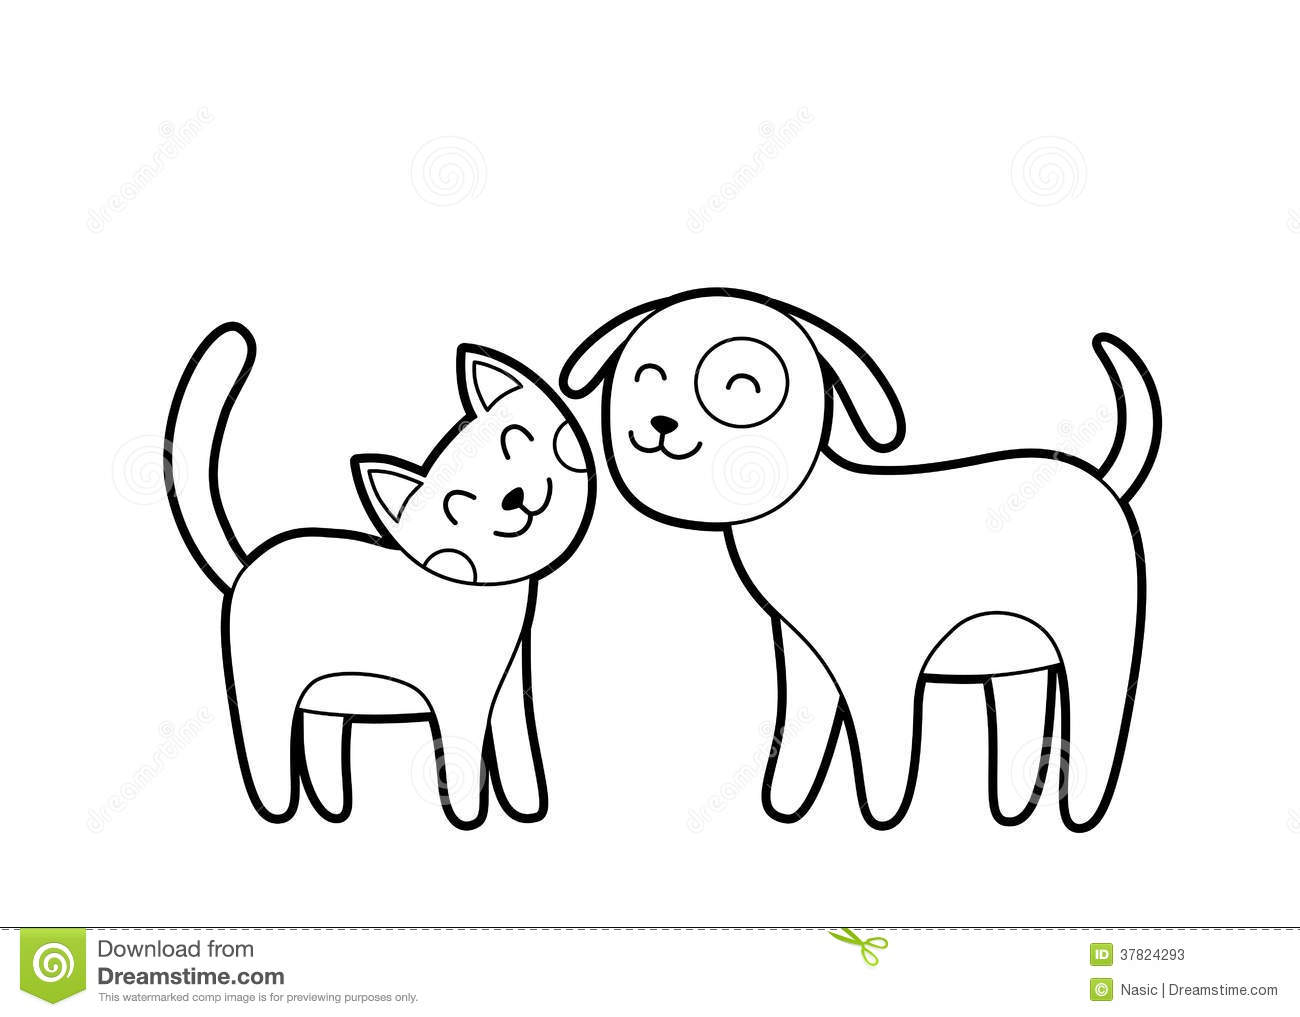 Cartoon Cat And Dog Sketch Stock Vector. Illustration Of